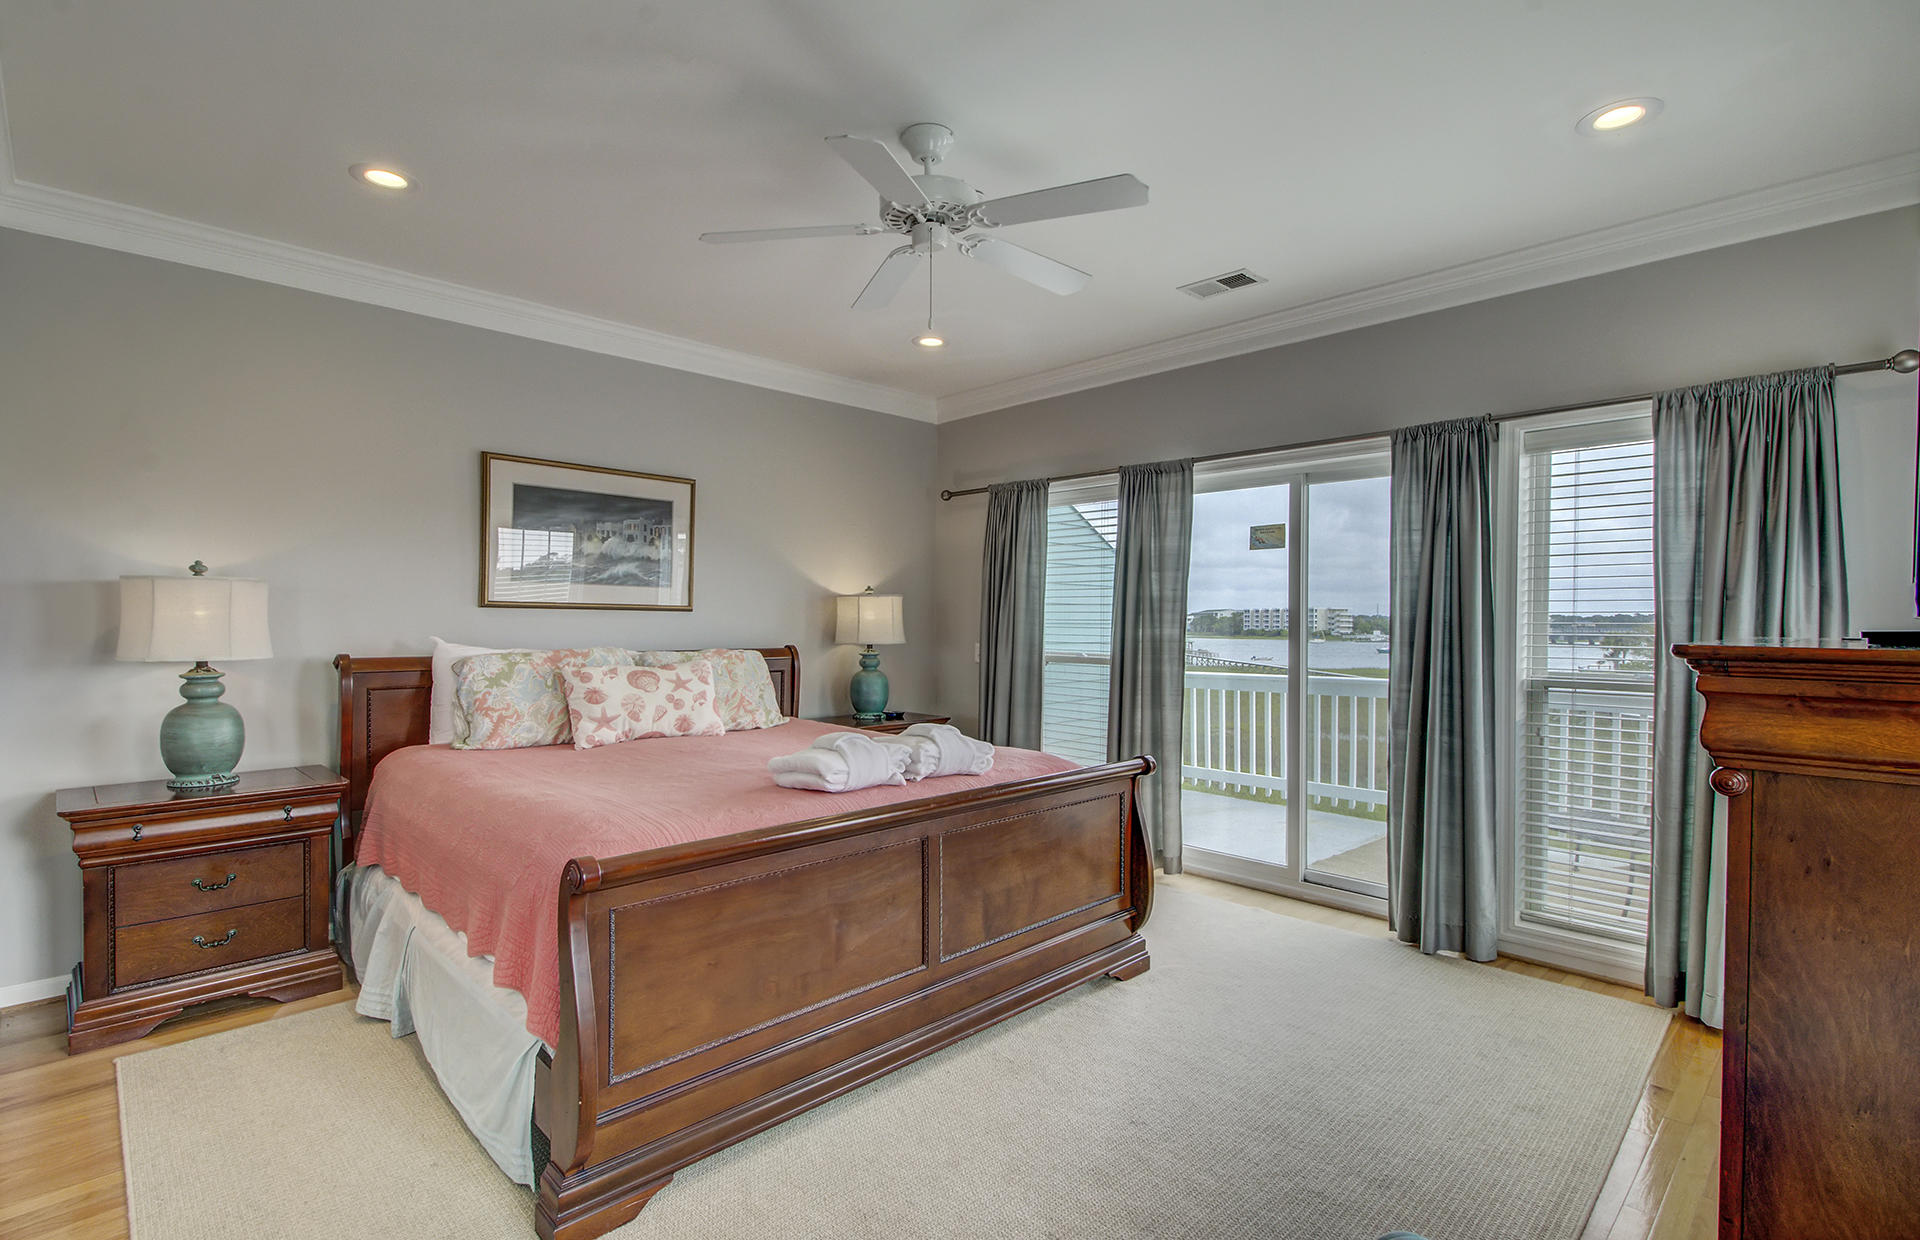 Waters Edge Homes For Sale - 80 2nd, Folly Beach, SC - 55